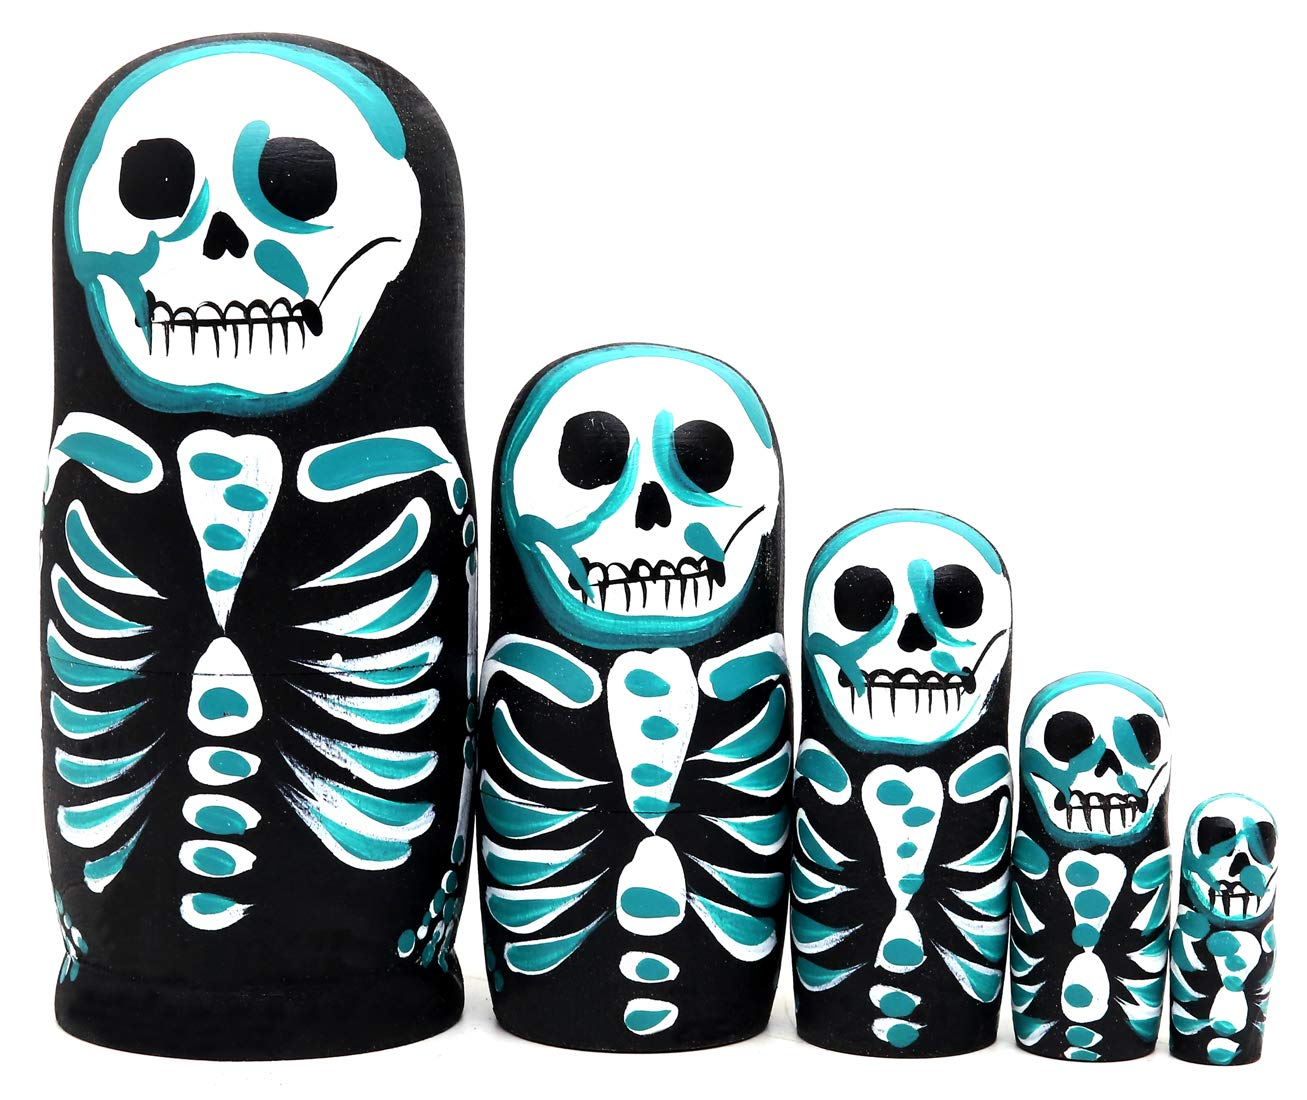 Debbieicy 5Pcs Beautiful Handmade Wooden Russian Nesting Dolls Skull Matryoshka dolls Gift for Halloween and Birthday - Stacking Doll Set of 5 From 6.3'' Tall by Debbieicy (Image #1)